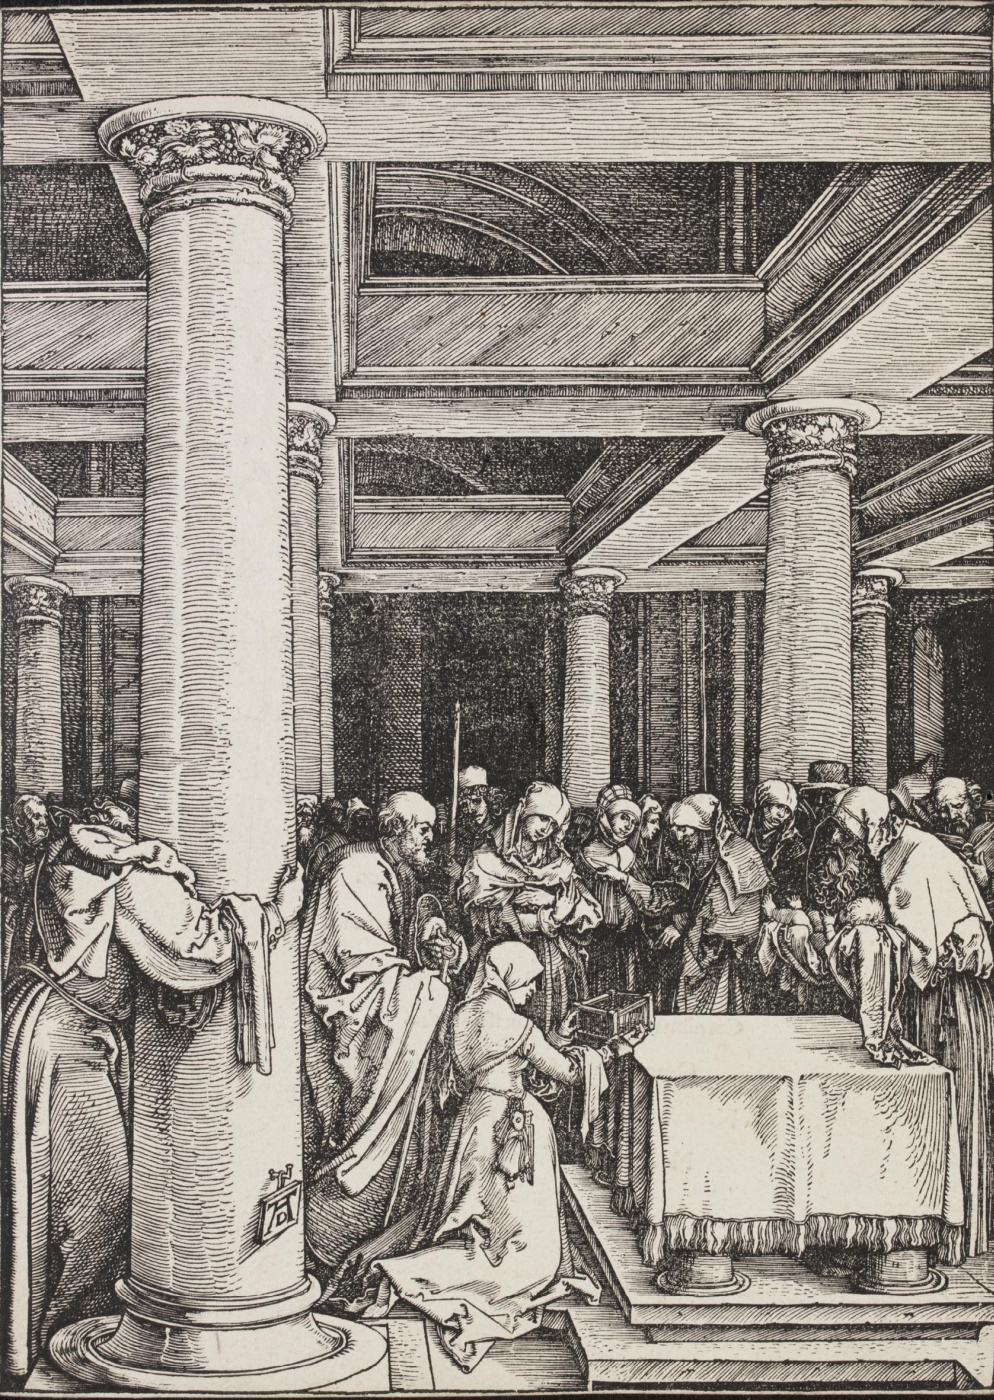 Albrecht Durer. The bringing of the infant Jesus in the temple